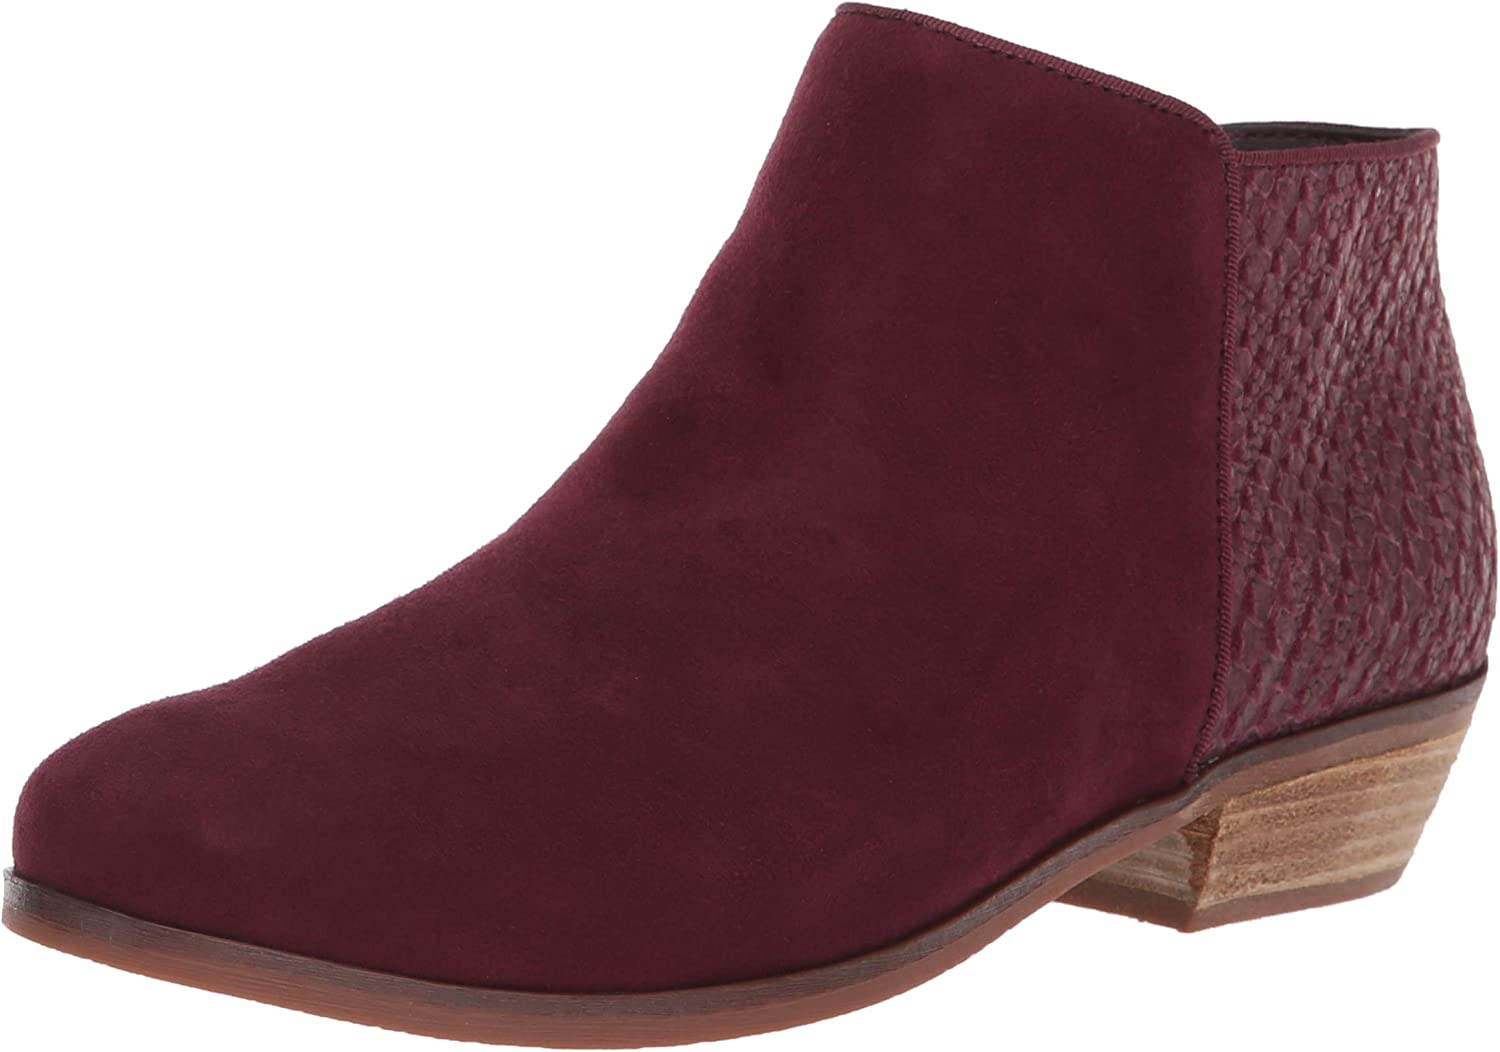 SoftWalk Woherren Rocklin Ankle Stiefel, Burgundy, 8.0 W US US US  14bd01